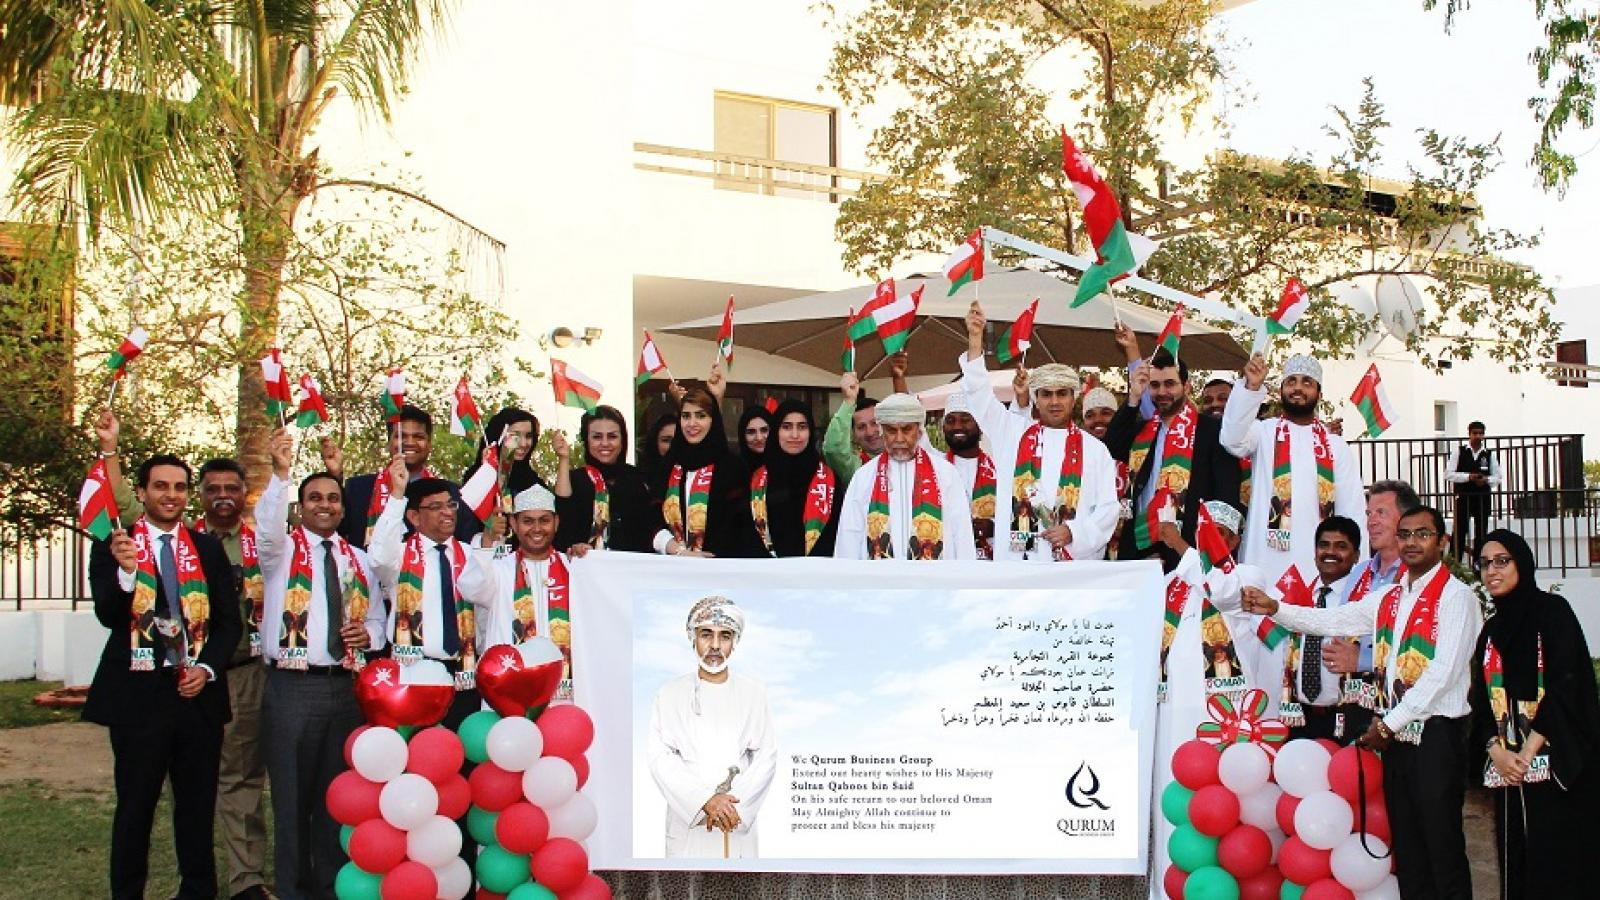 QBG Employees Mark Safe Return of His Majesty Sultan Qaboos